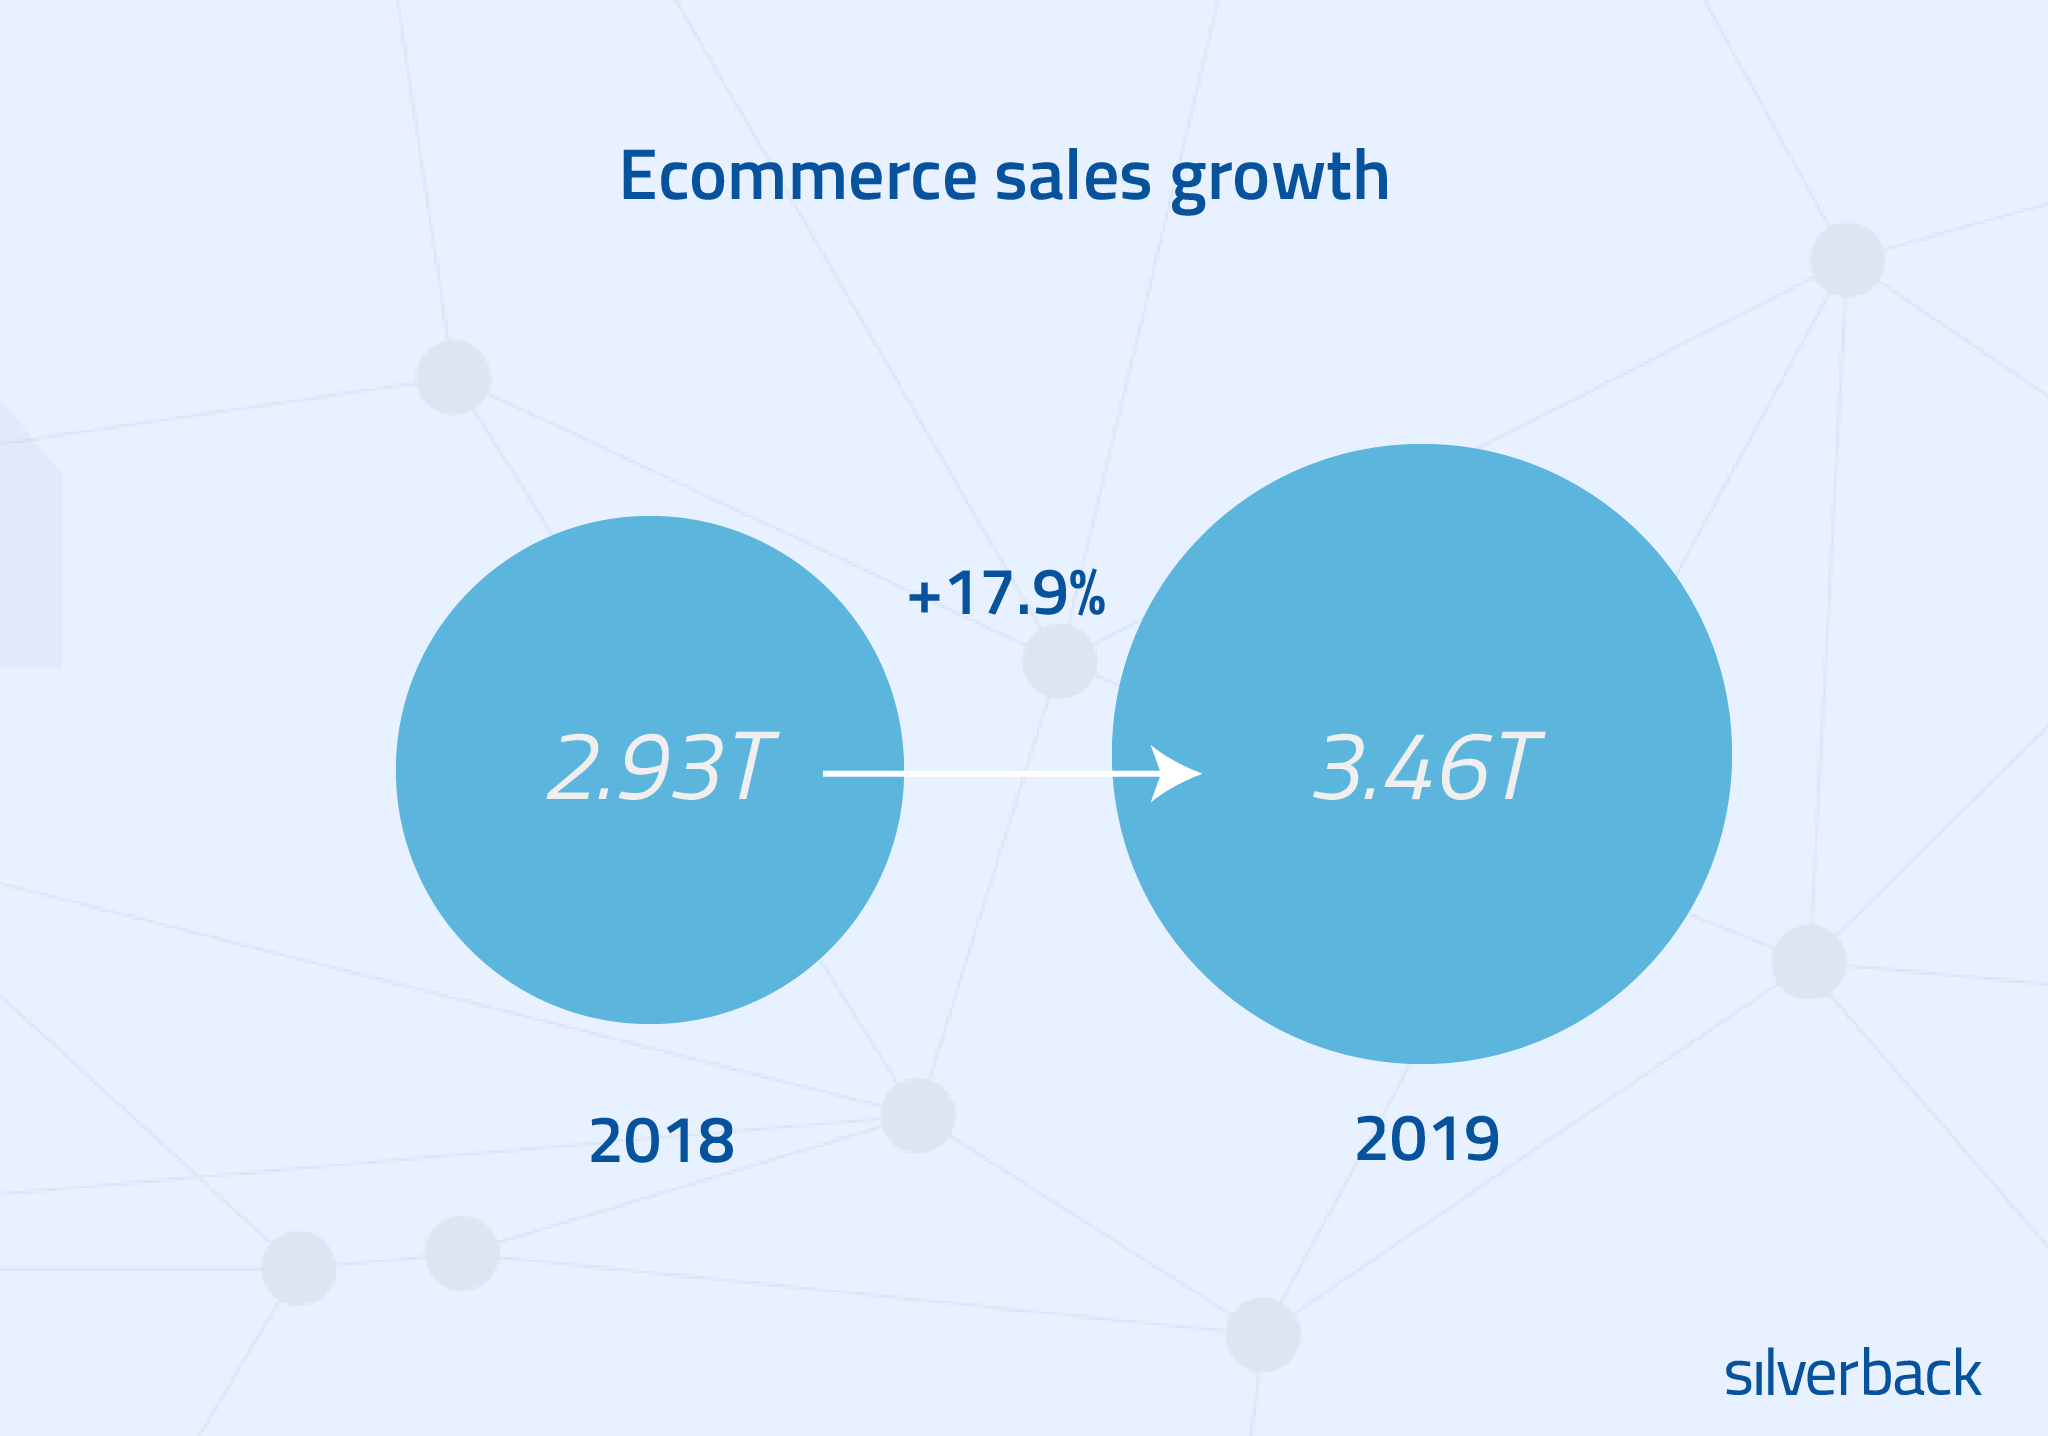 Ecommerce sales growth:  In 2019, consumers worldwide spent nearly $3.46 trillion online, up from $2.93 trillion in 2018, according to a recent study. That's almost an 18% increase in ecommerce sales year on year, and it's only expected to increase.